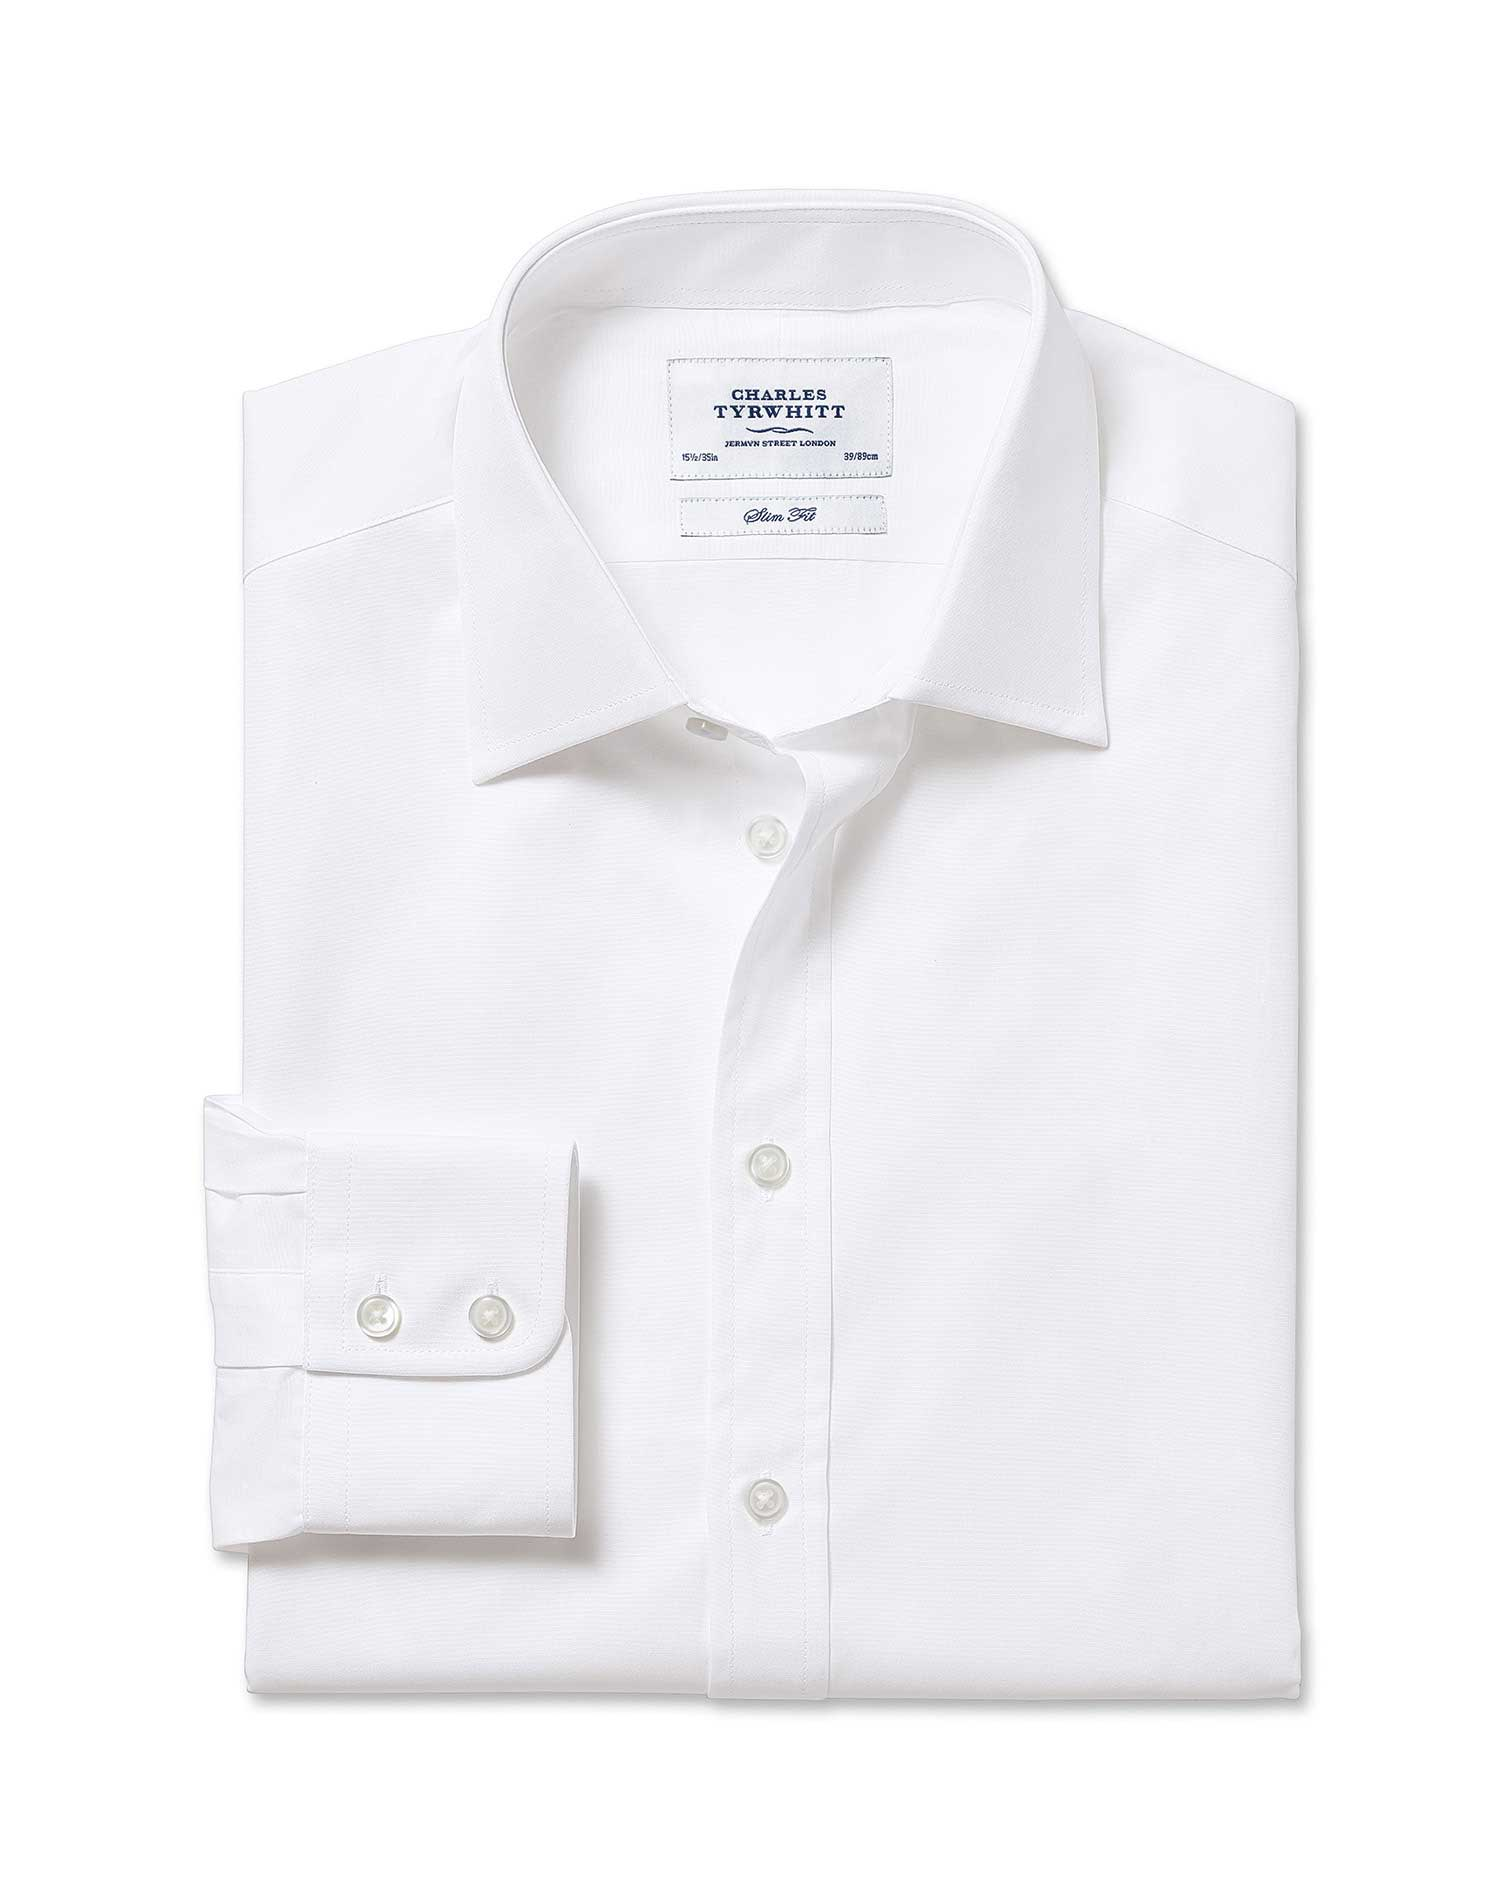 Extra Slim Fit Egyptian Cotton Poplin White Formal Shirt Double Cuff Size 15/34 by Charles Tyrwhitt